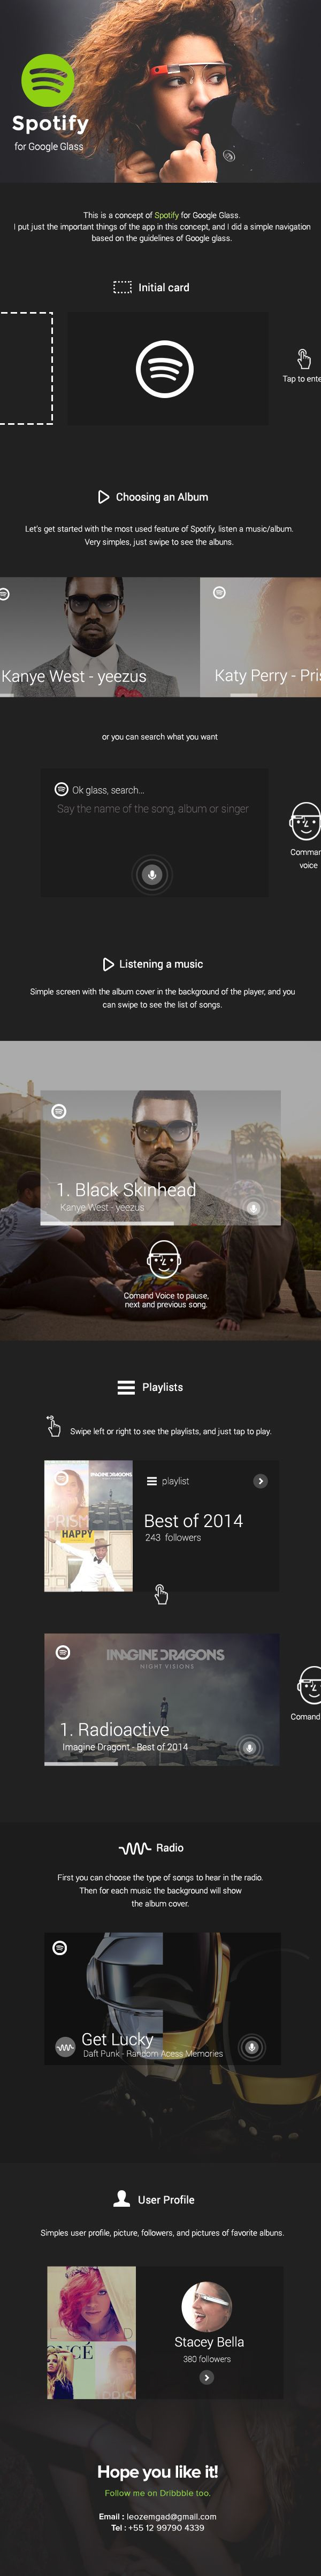 Spotify for Google Glass by Leonardo Zem, via Behance